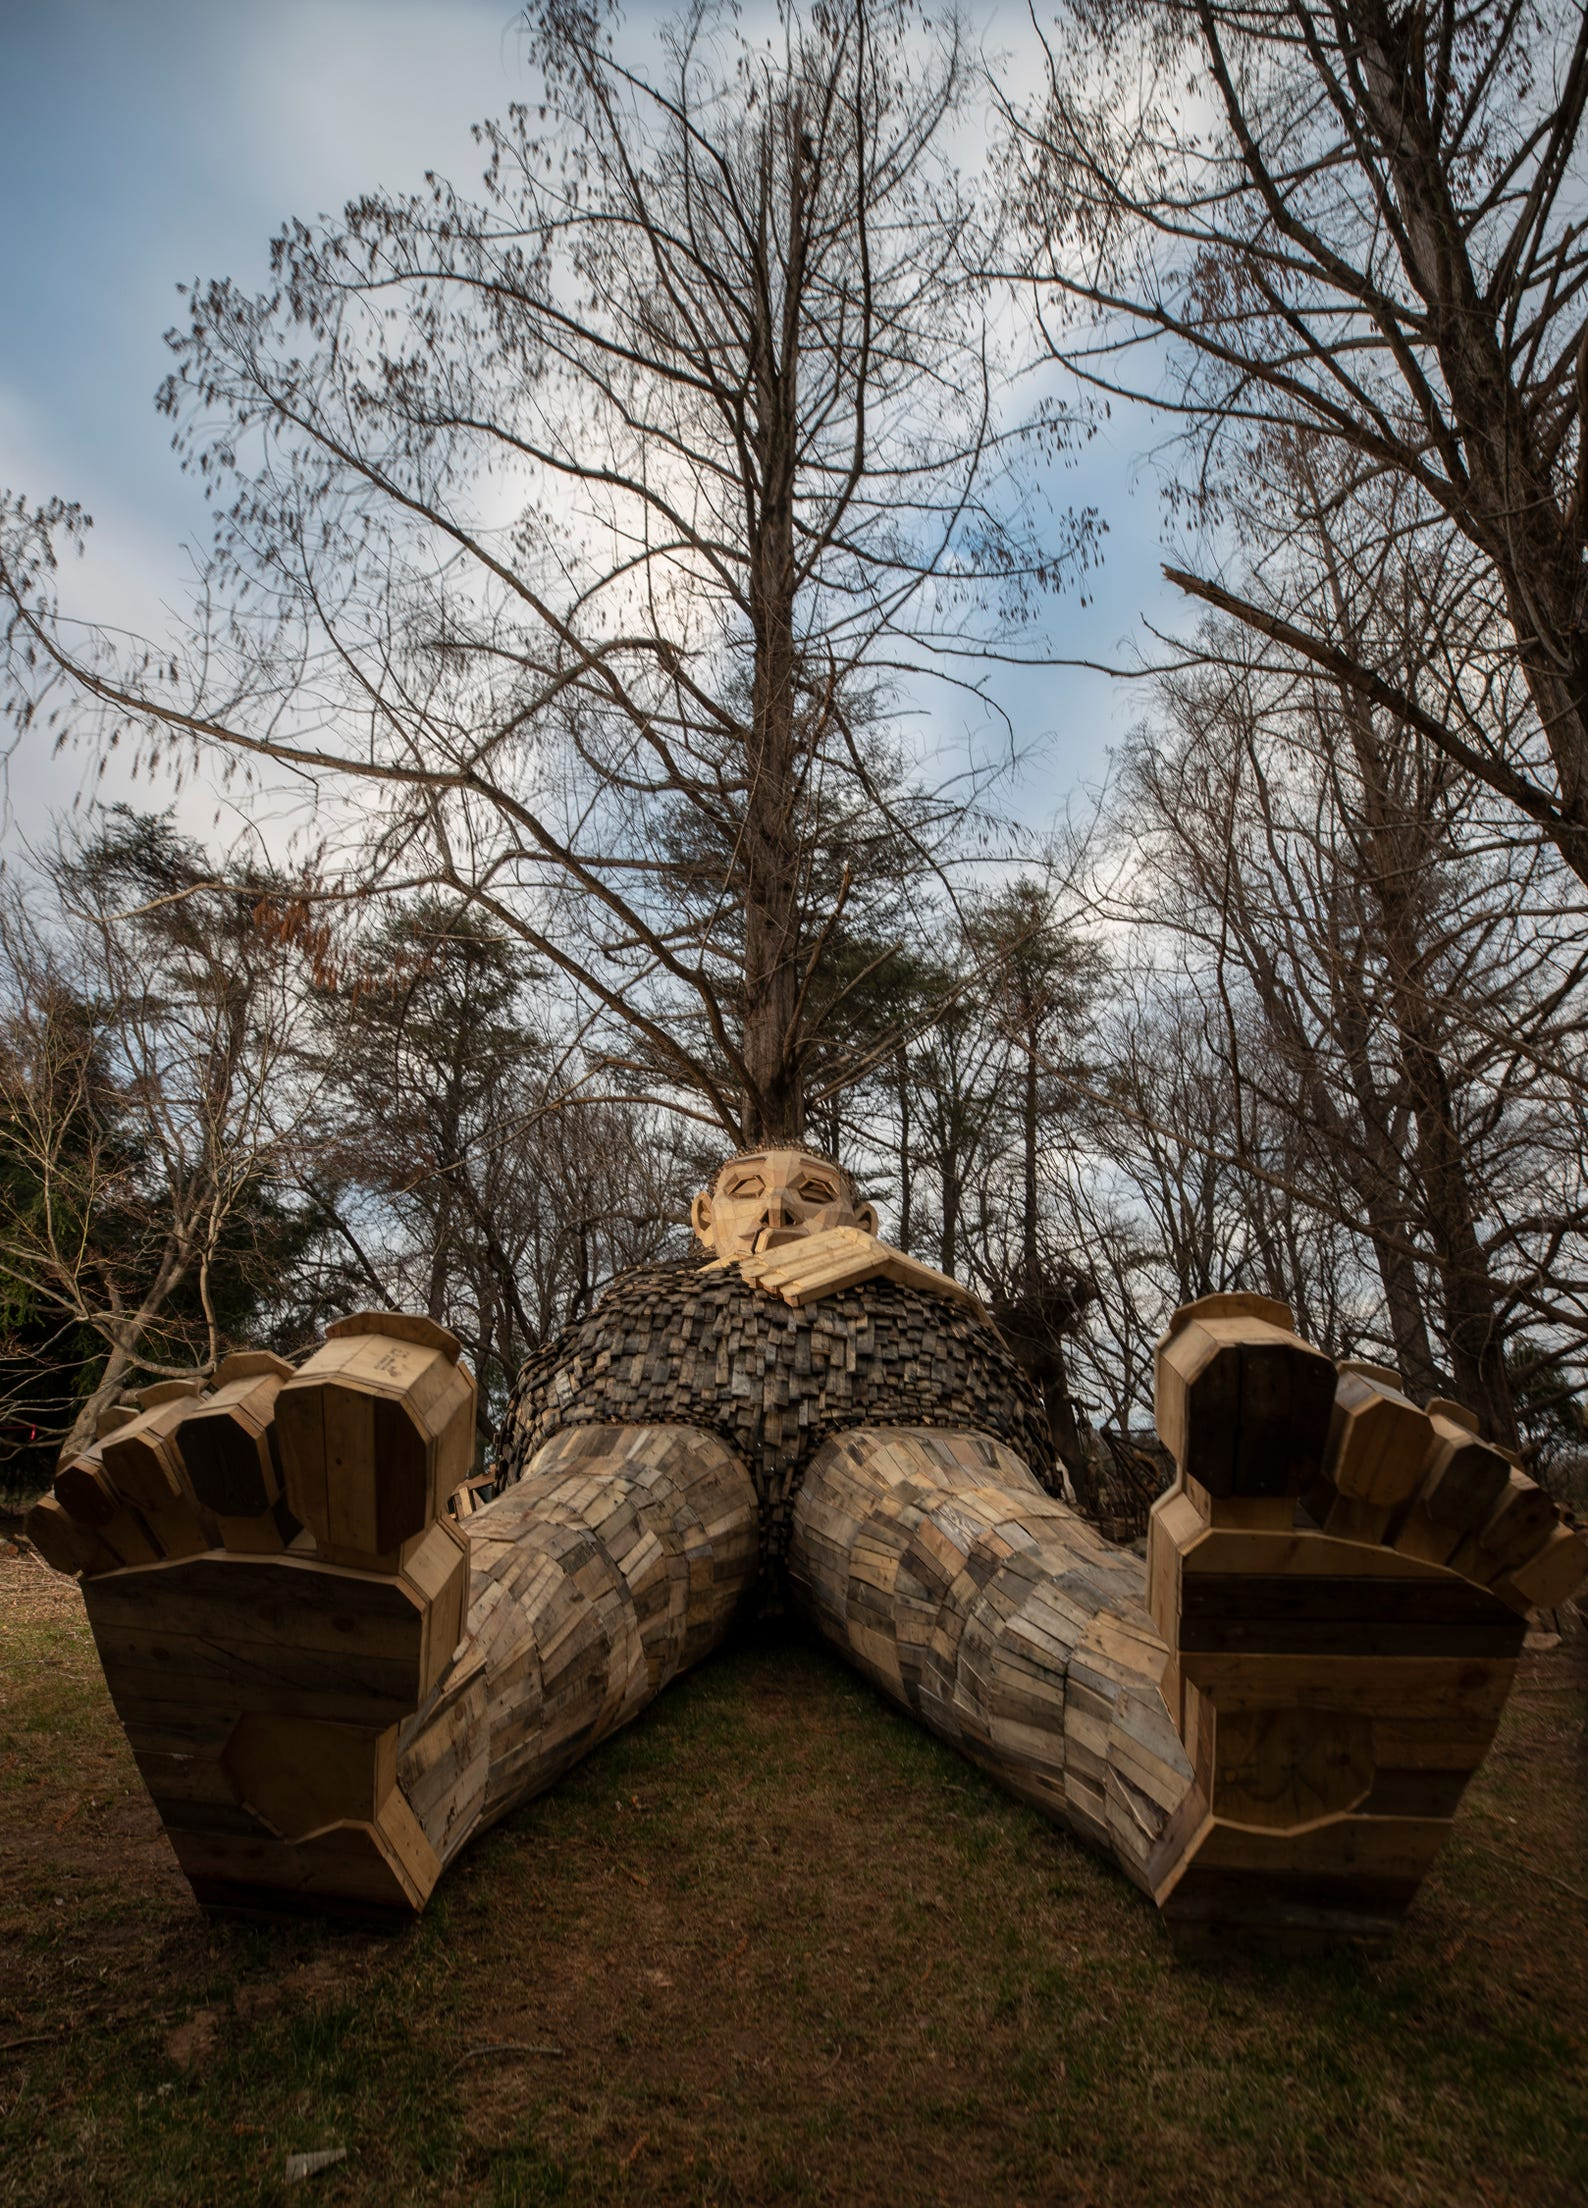 A pregnant Momma Loumari rests against a redwood tree. The giant troll and her two children have taken up residence in Bernheim Forest. The sculpture is the work of Artist Thomas Dambo. March 15, 2019.